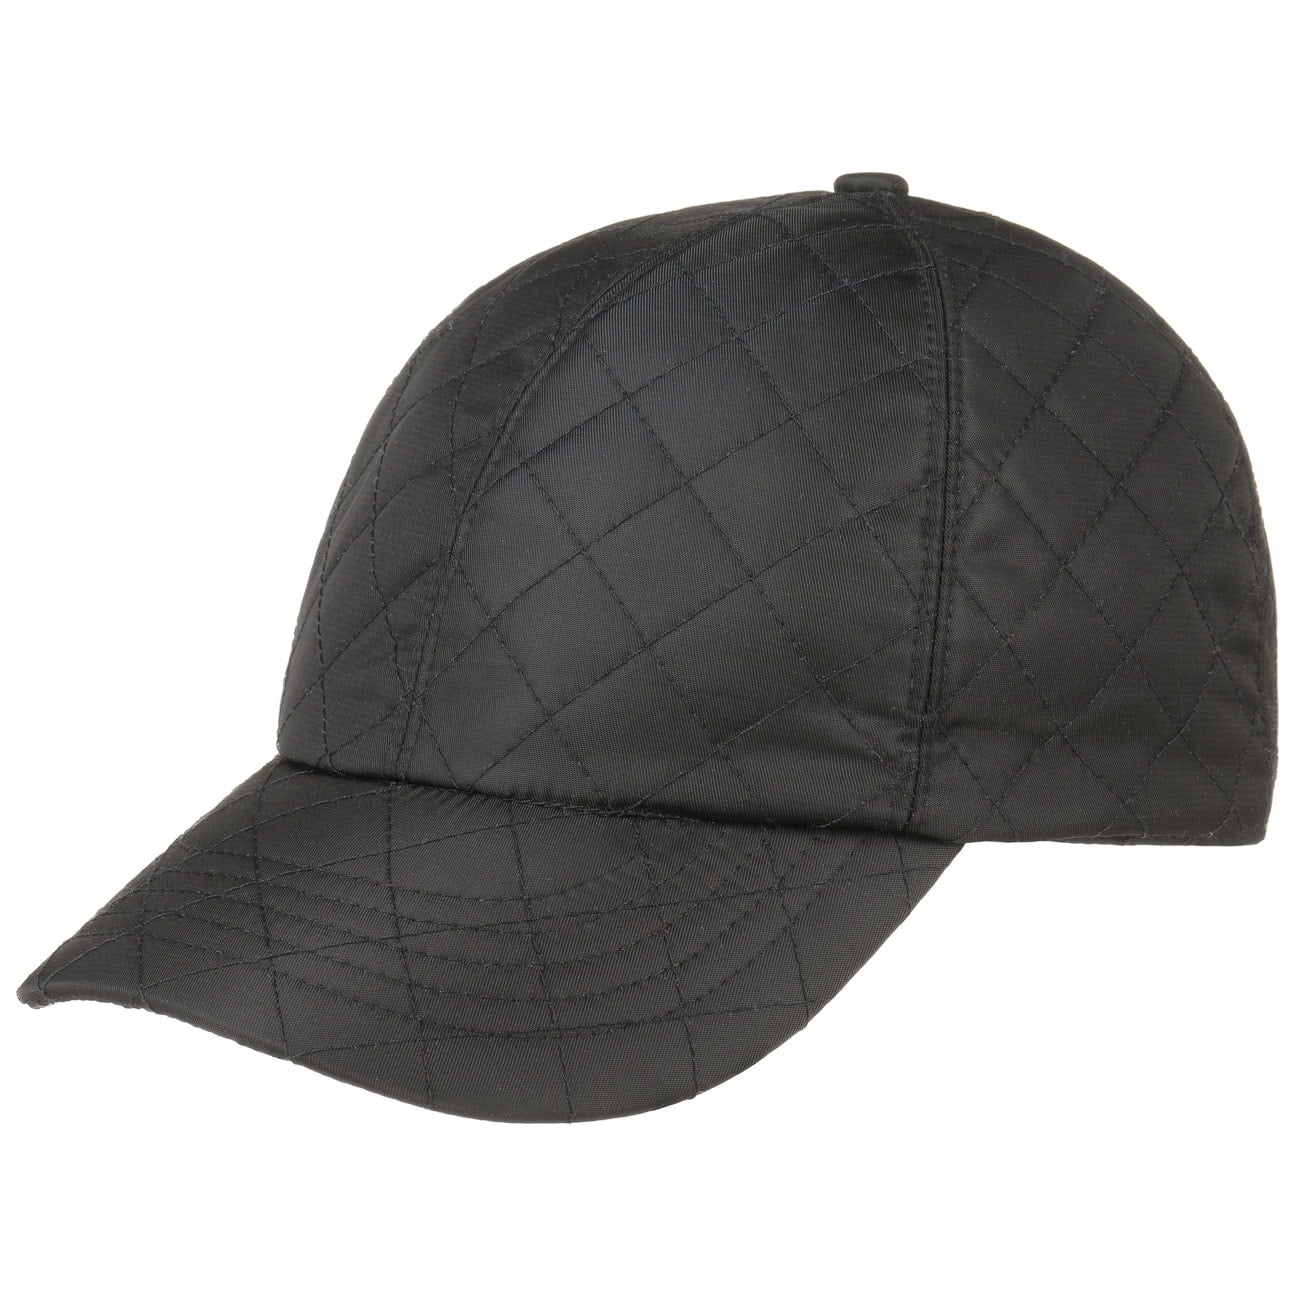 Quilted Rain Cap by Betmar